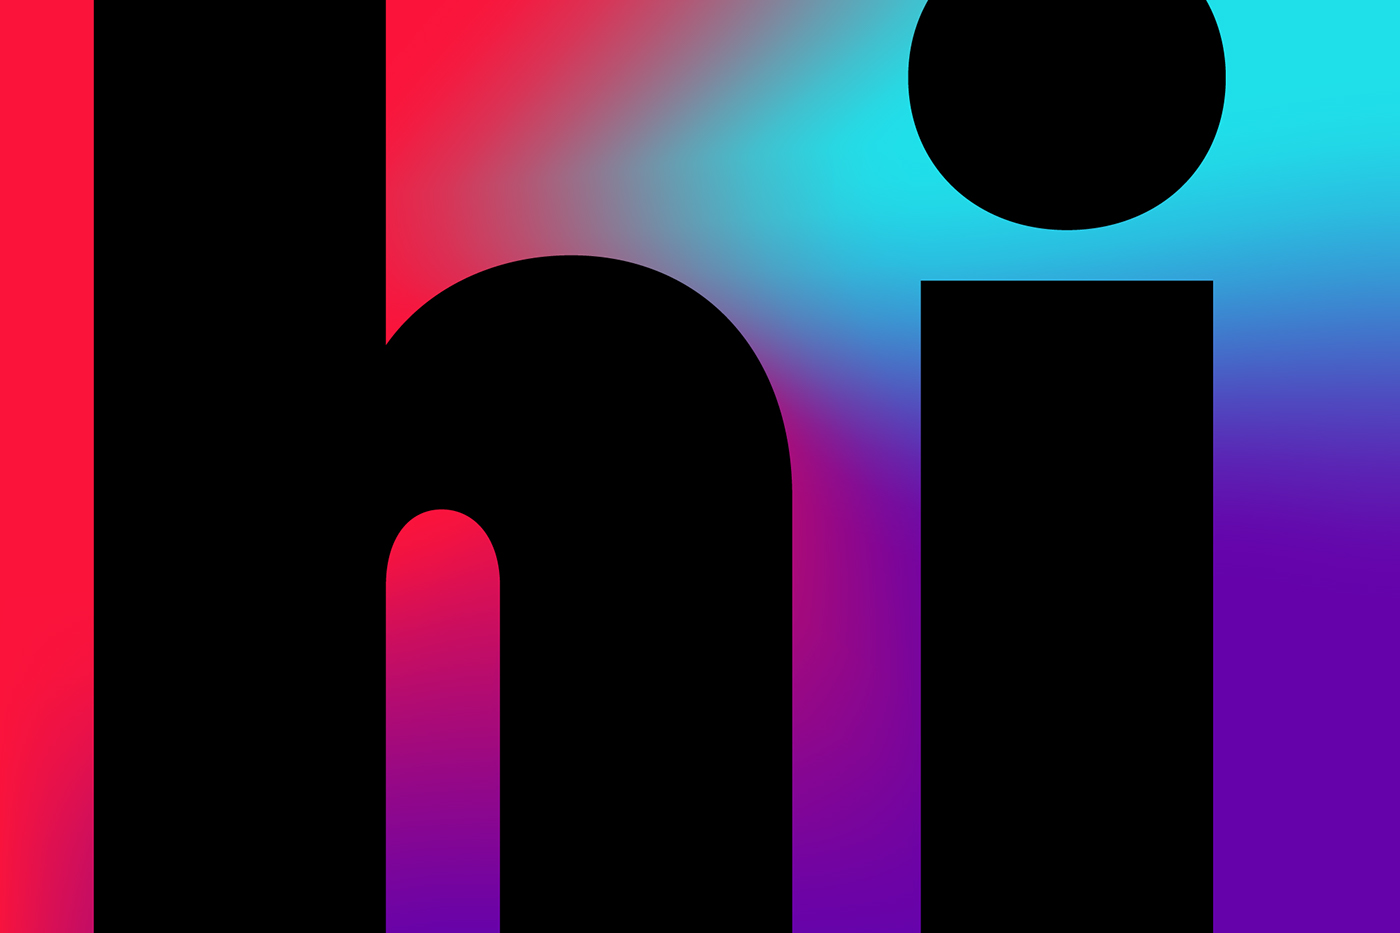 Typeface free typeface typography   Geometric Typeface free fonts design trends 2019 design trends gradients graphic design  colors